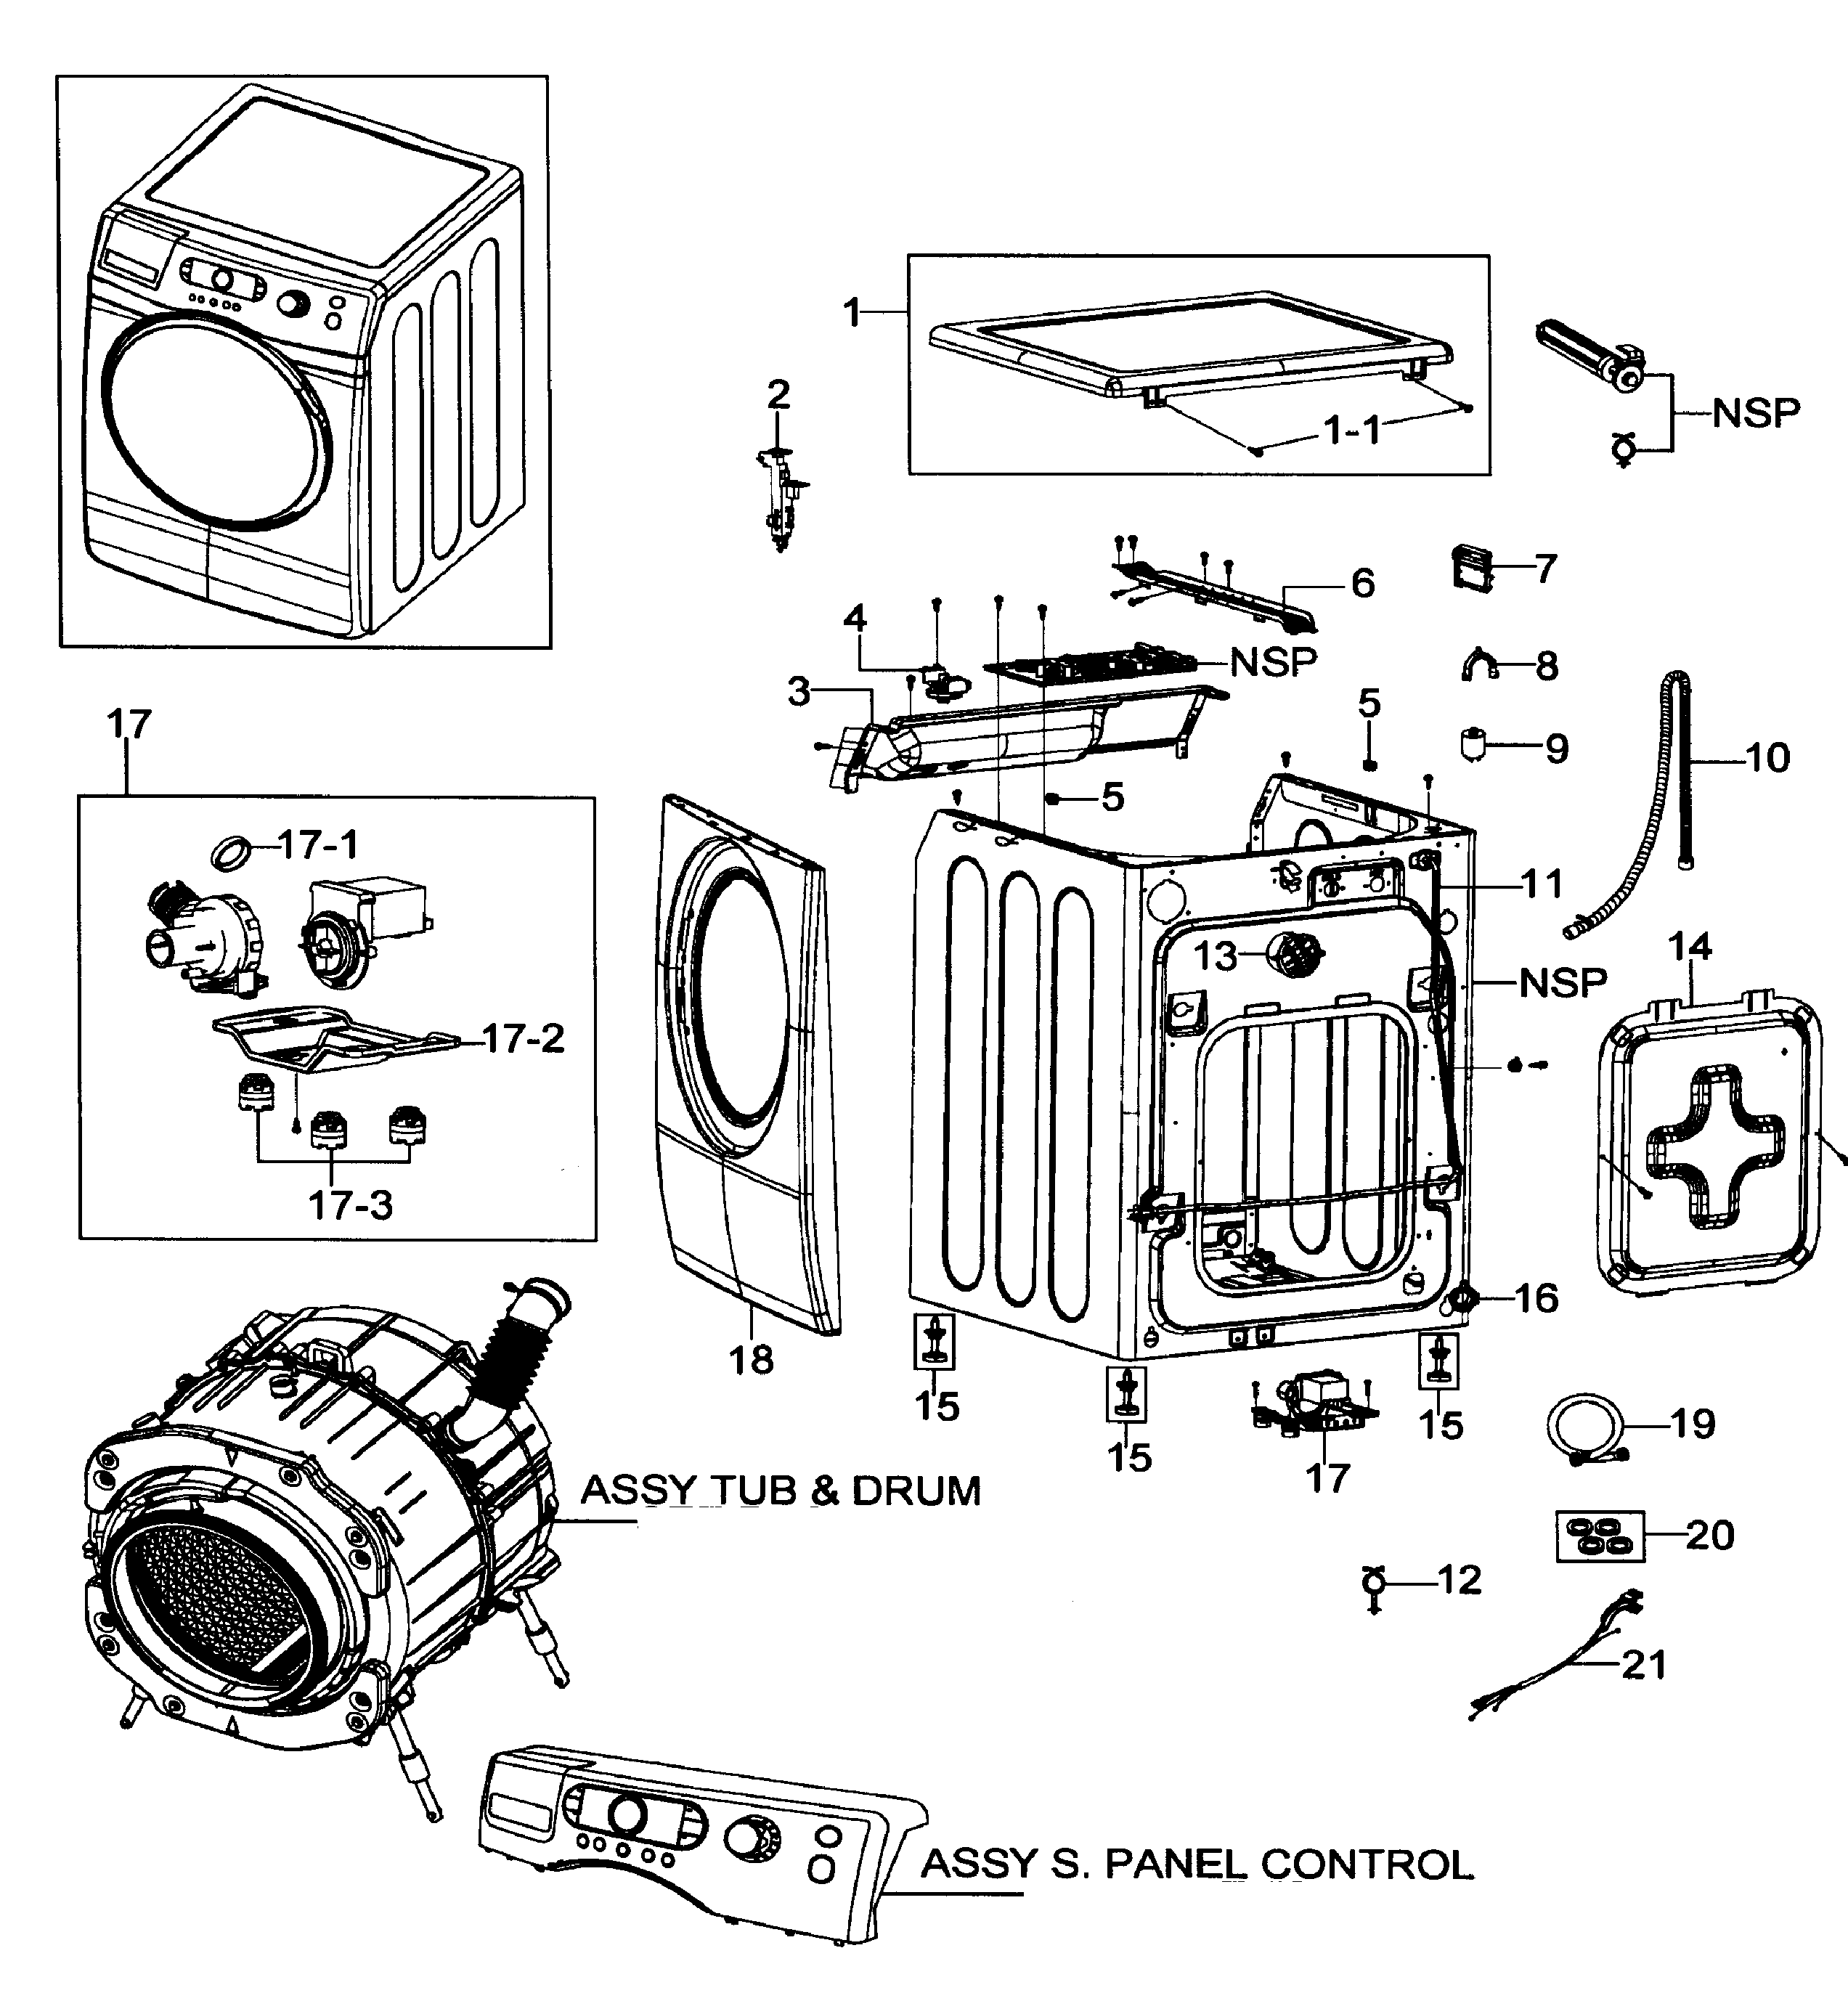 Wiring Diagram For Kenmore 70 Series Washer Diagrams